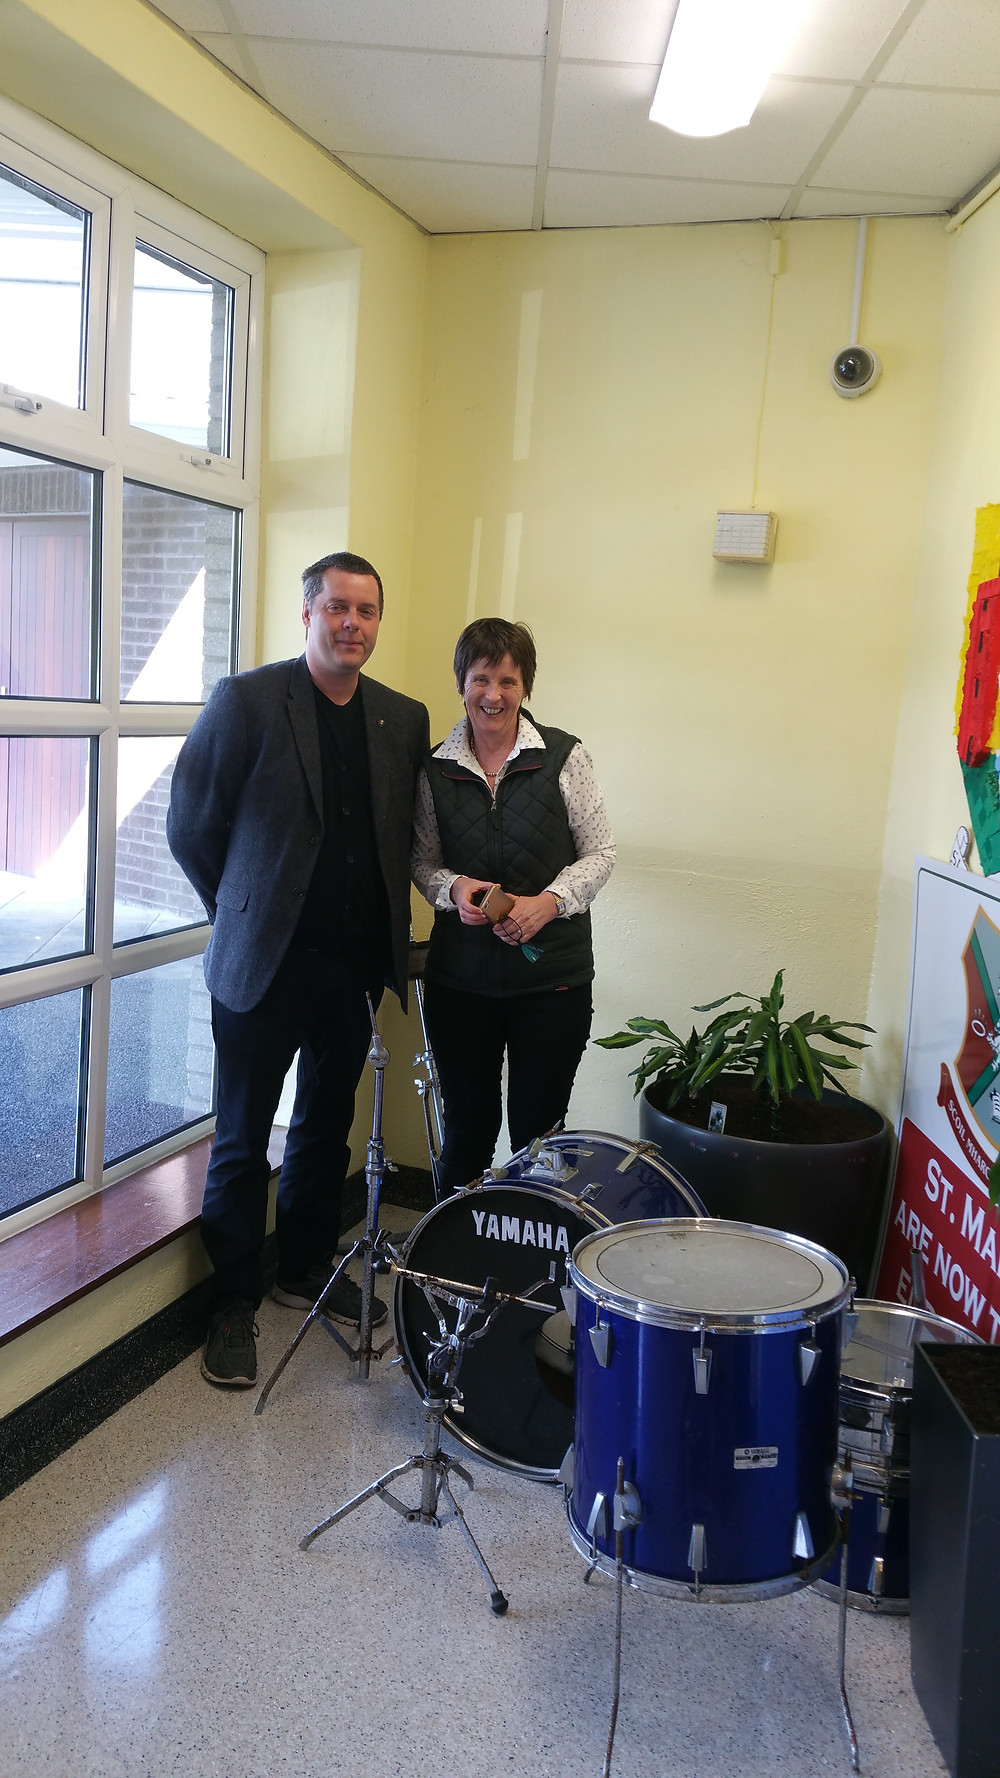 James Woods presenting his drum kit to Ms Coffey